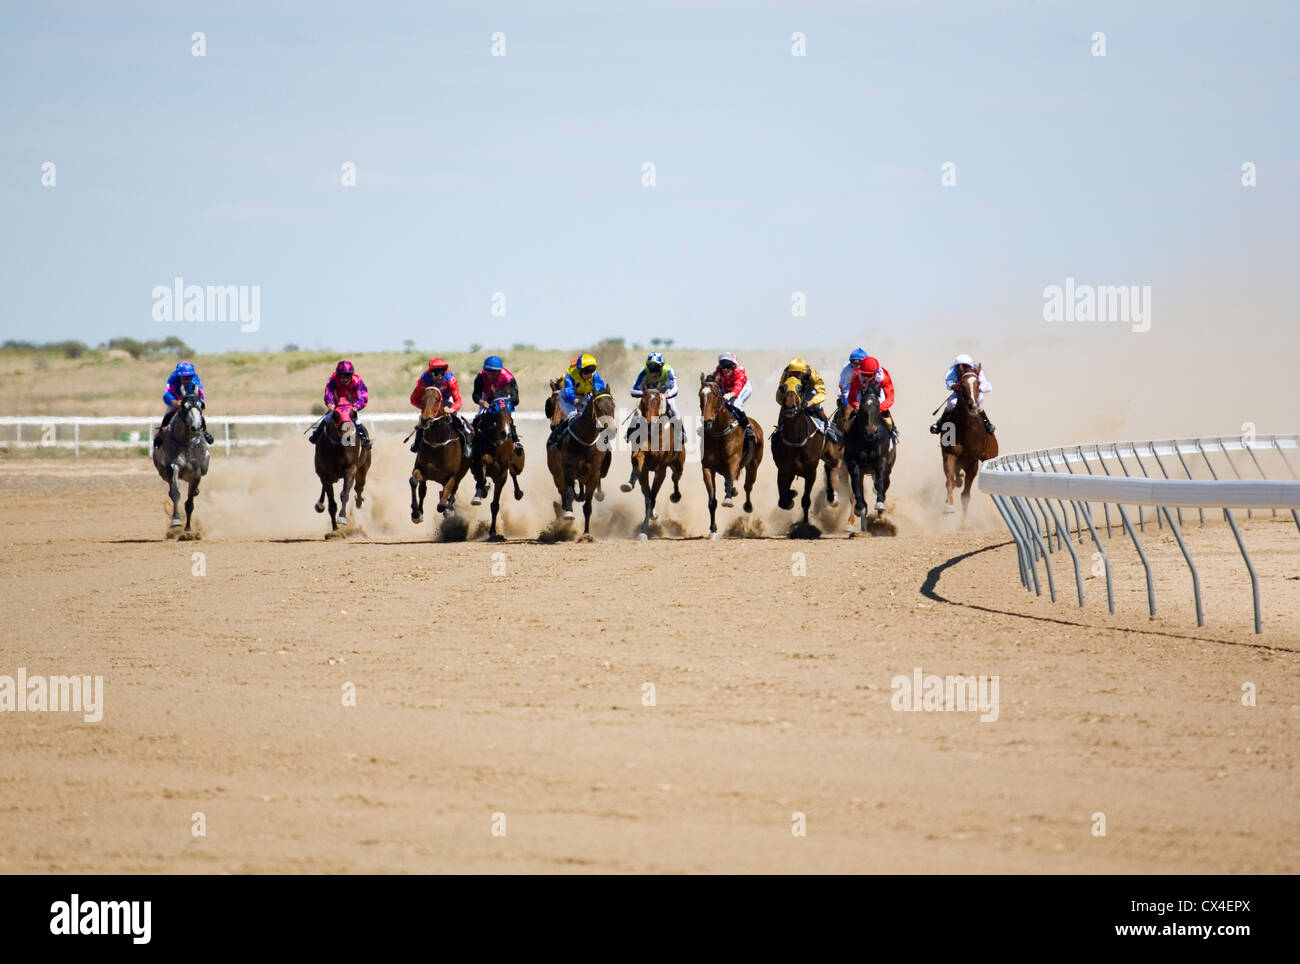 Horse racing in the outback at the Birdsville Cup races.  Birdsville, Queensland, AUSTRALIA. - Stock Image